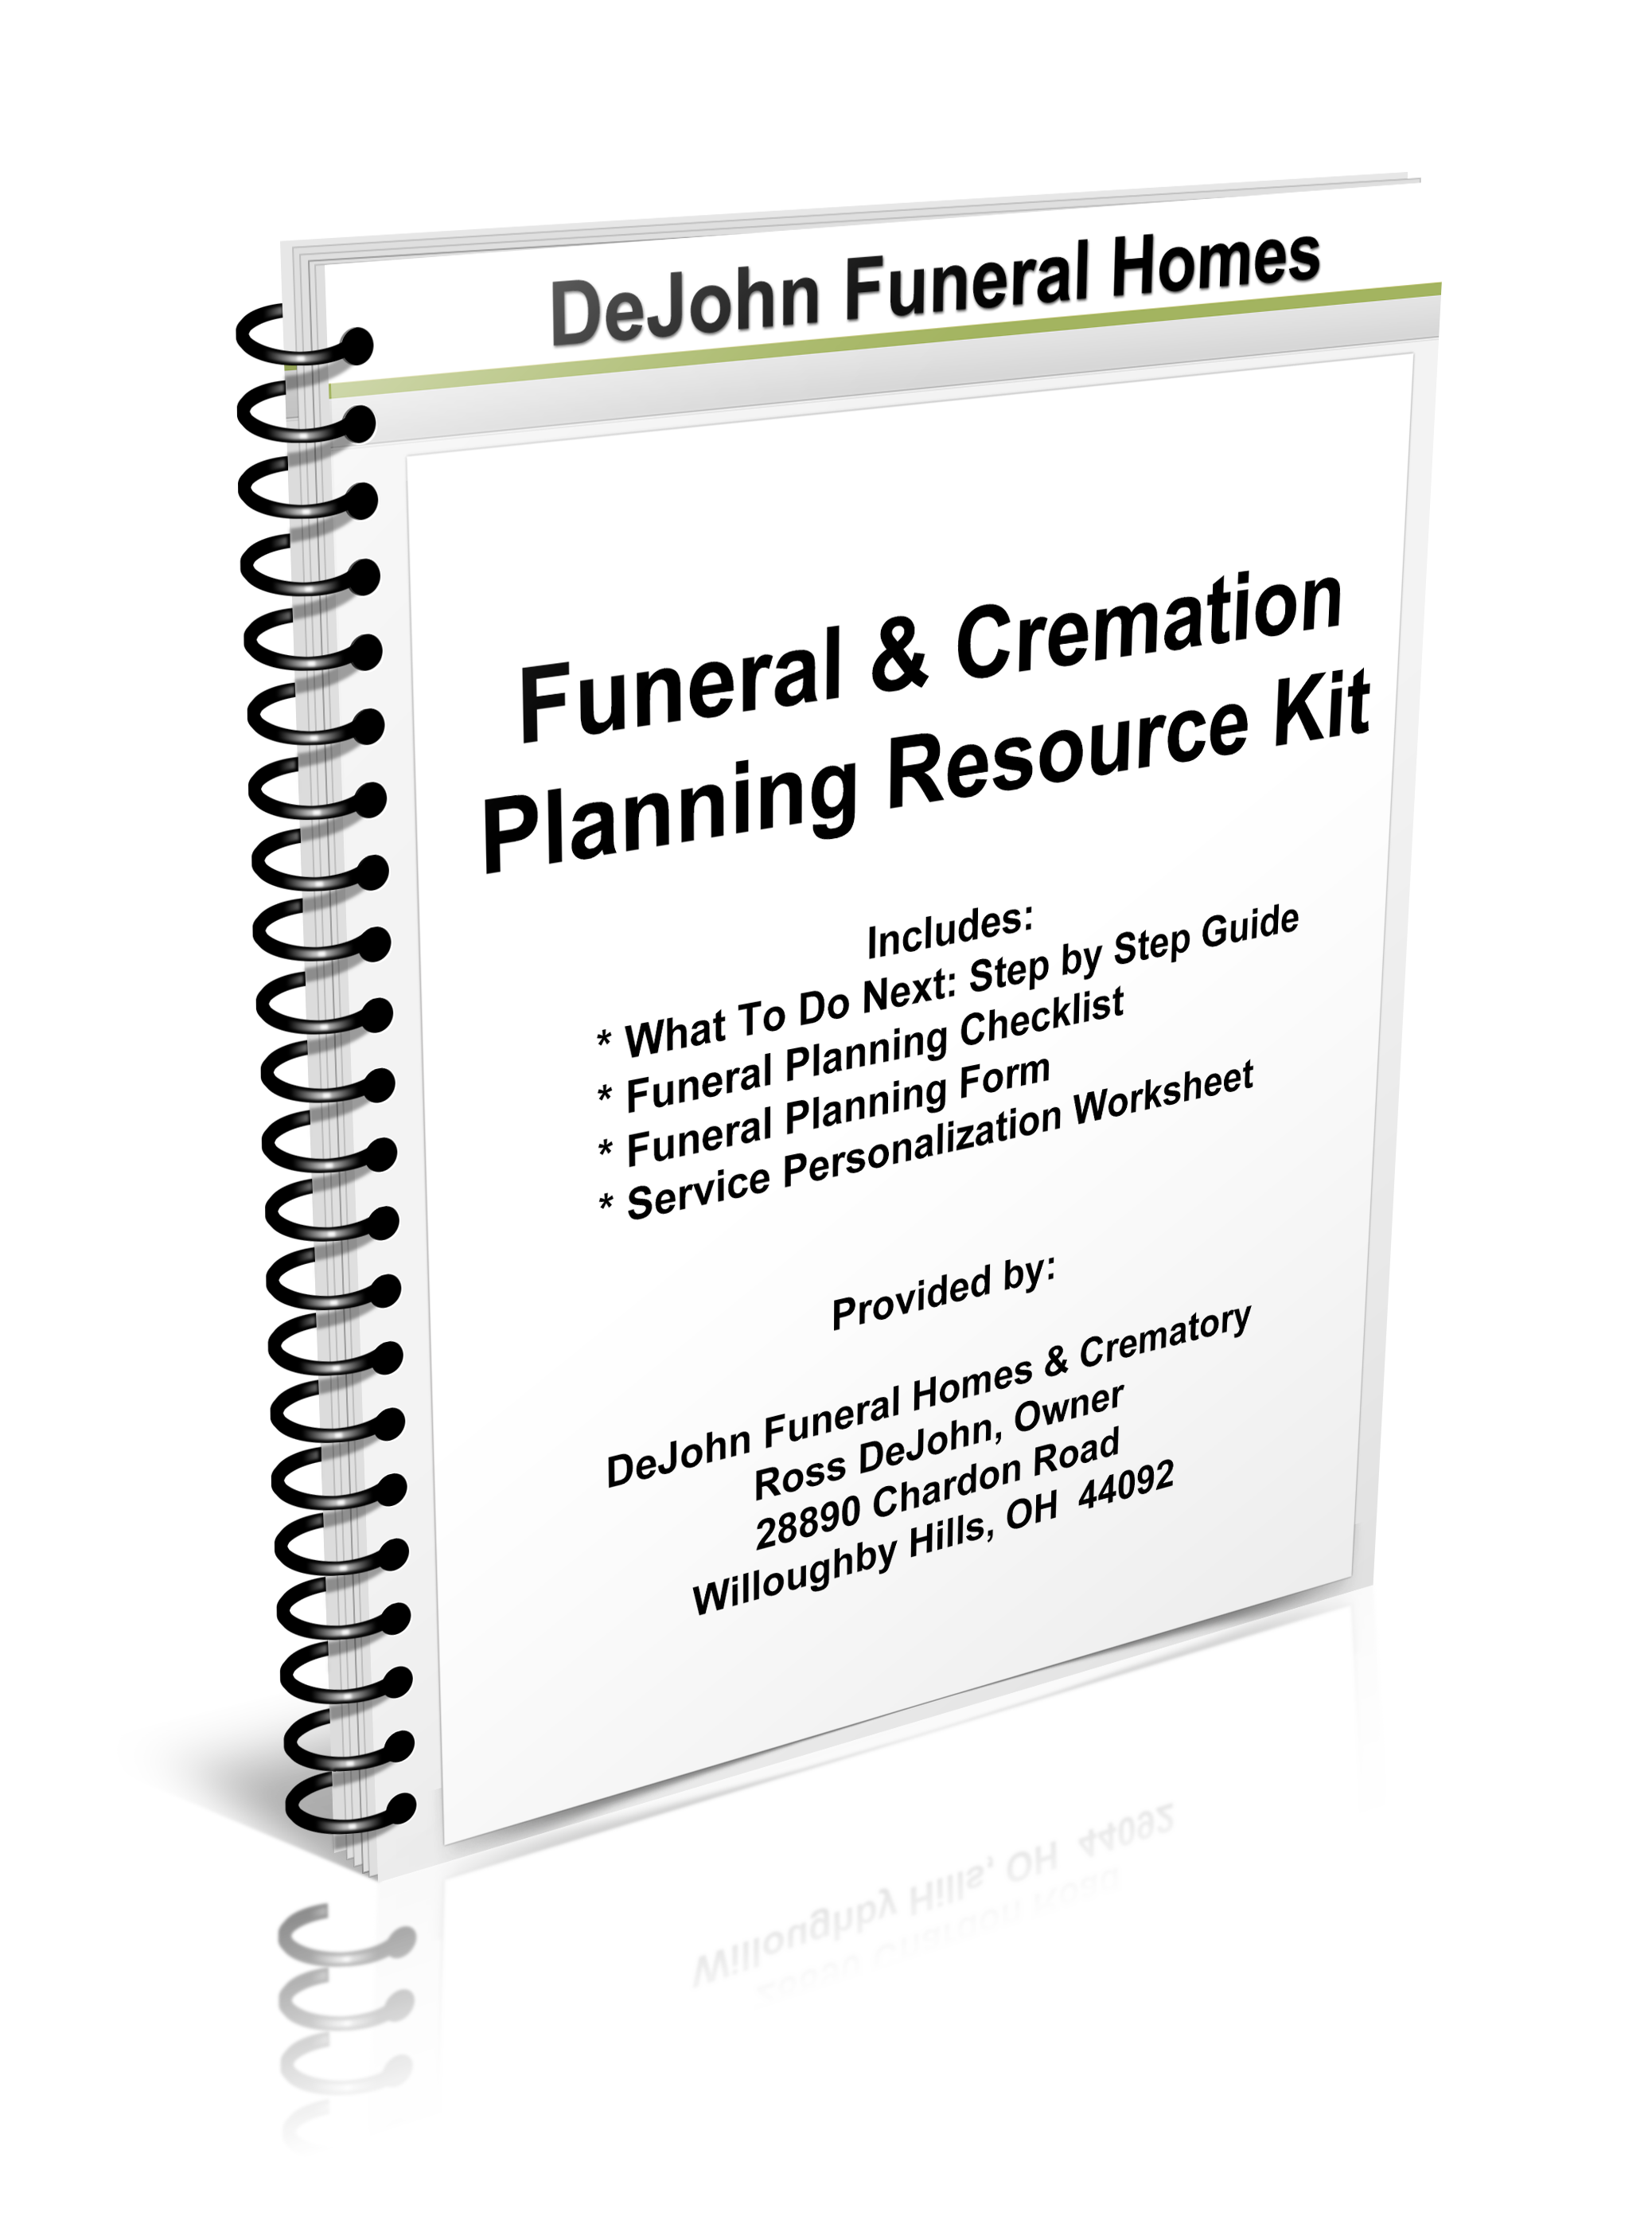 download your resource kit dejohn funeral homes crematory